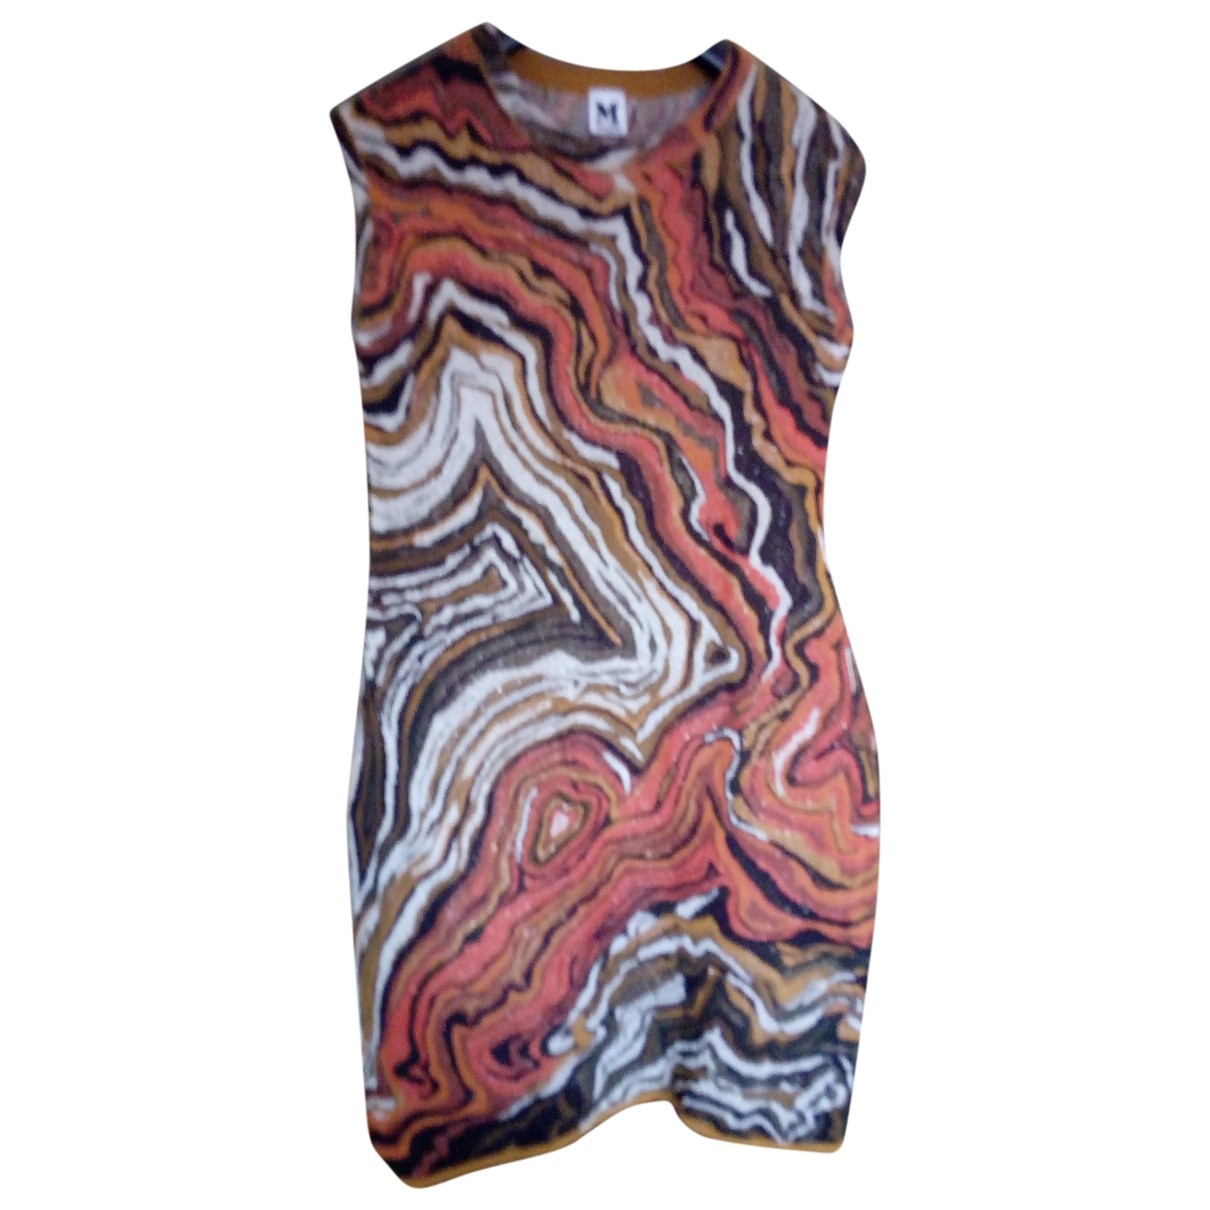 M Missoni \N Multicolour dress for Women 44 IT